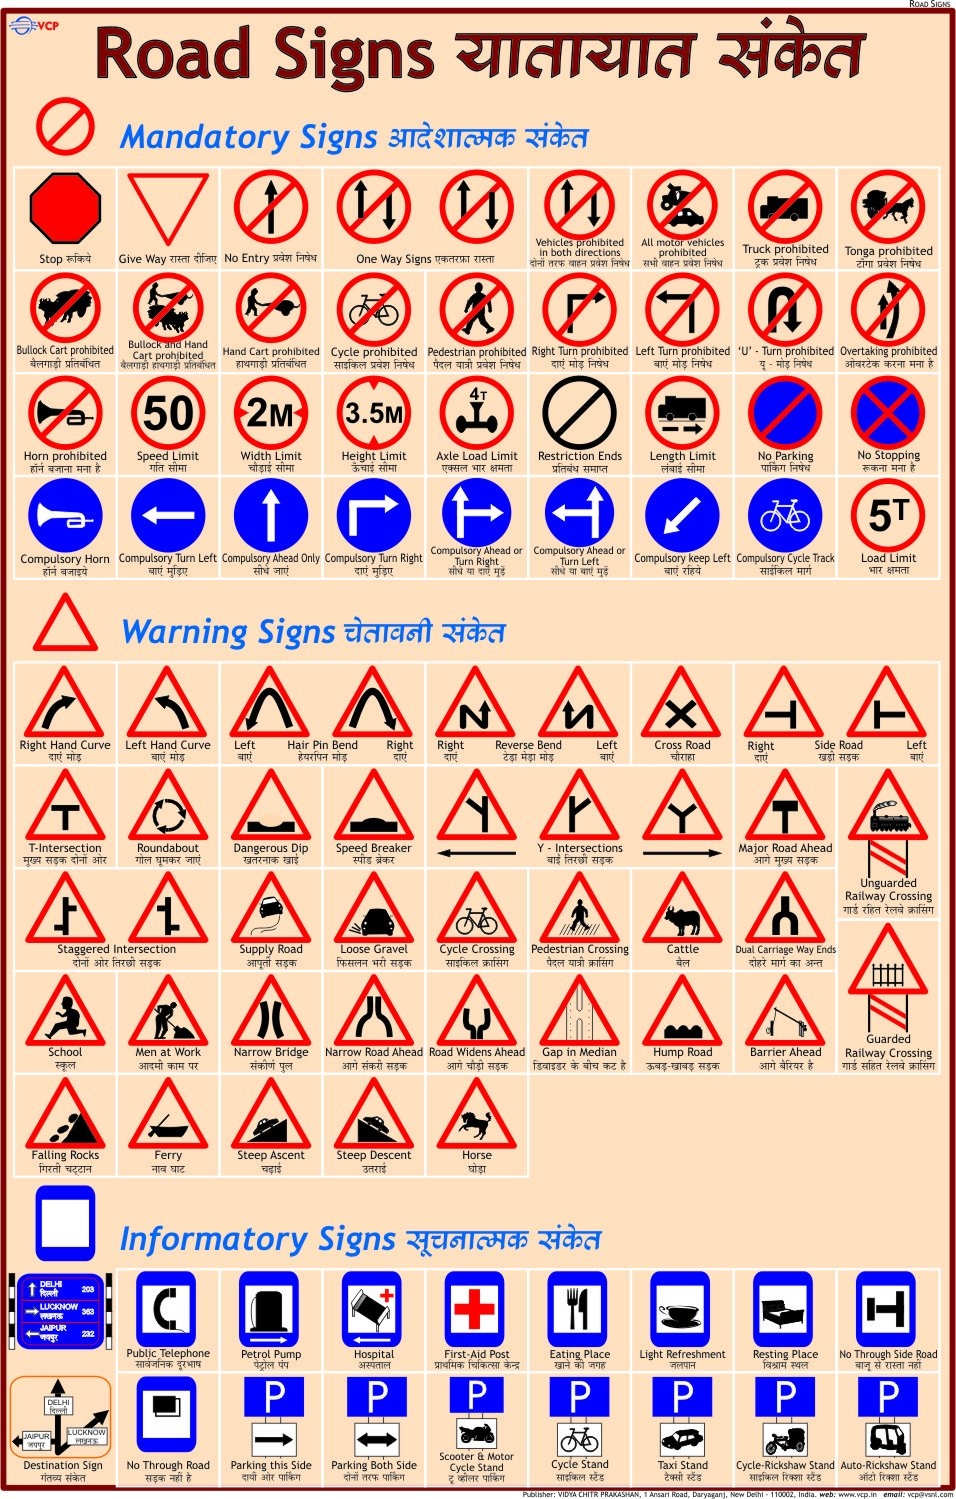 Road signs india and meanings pdf995